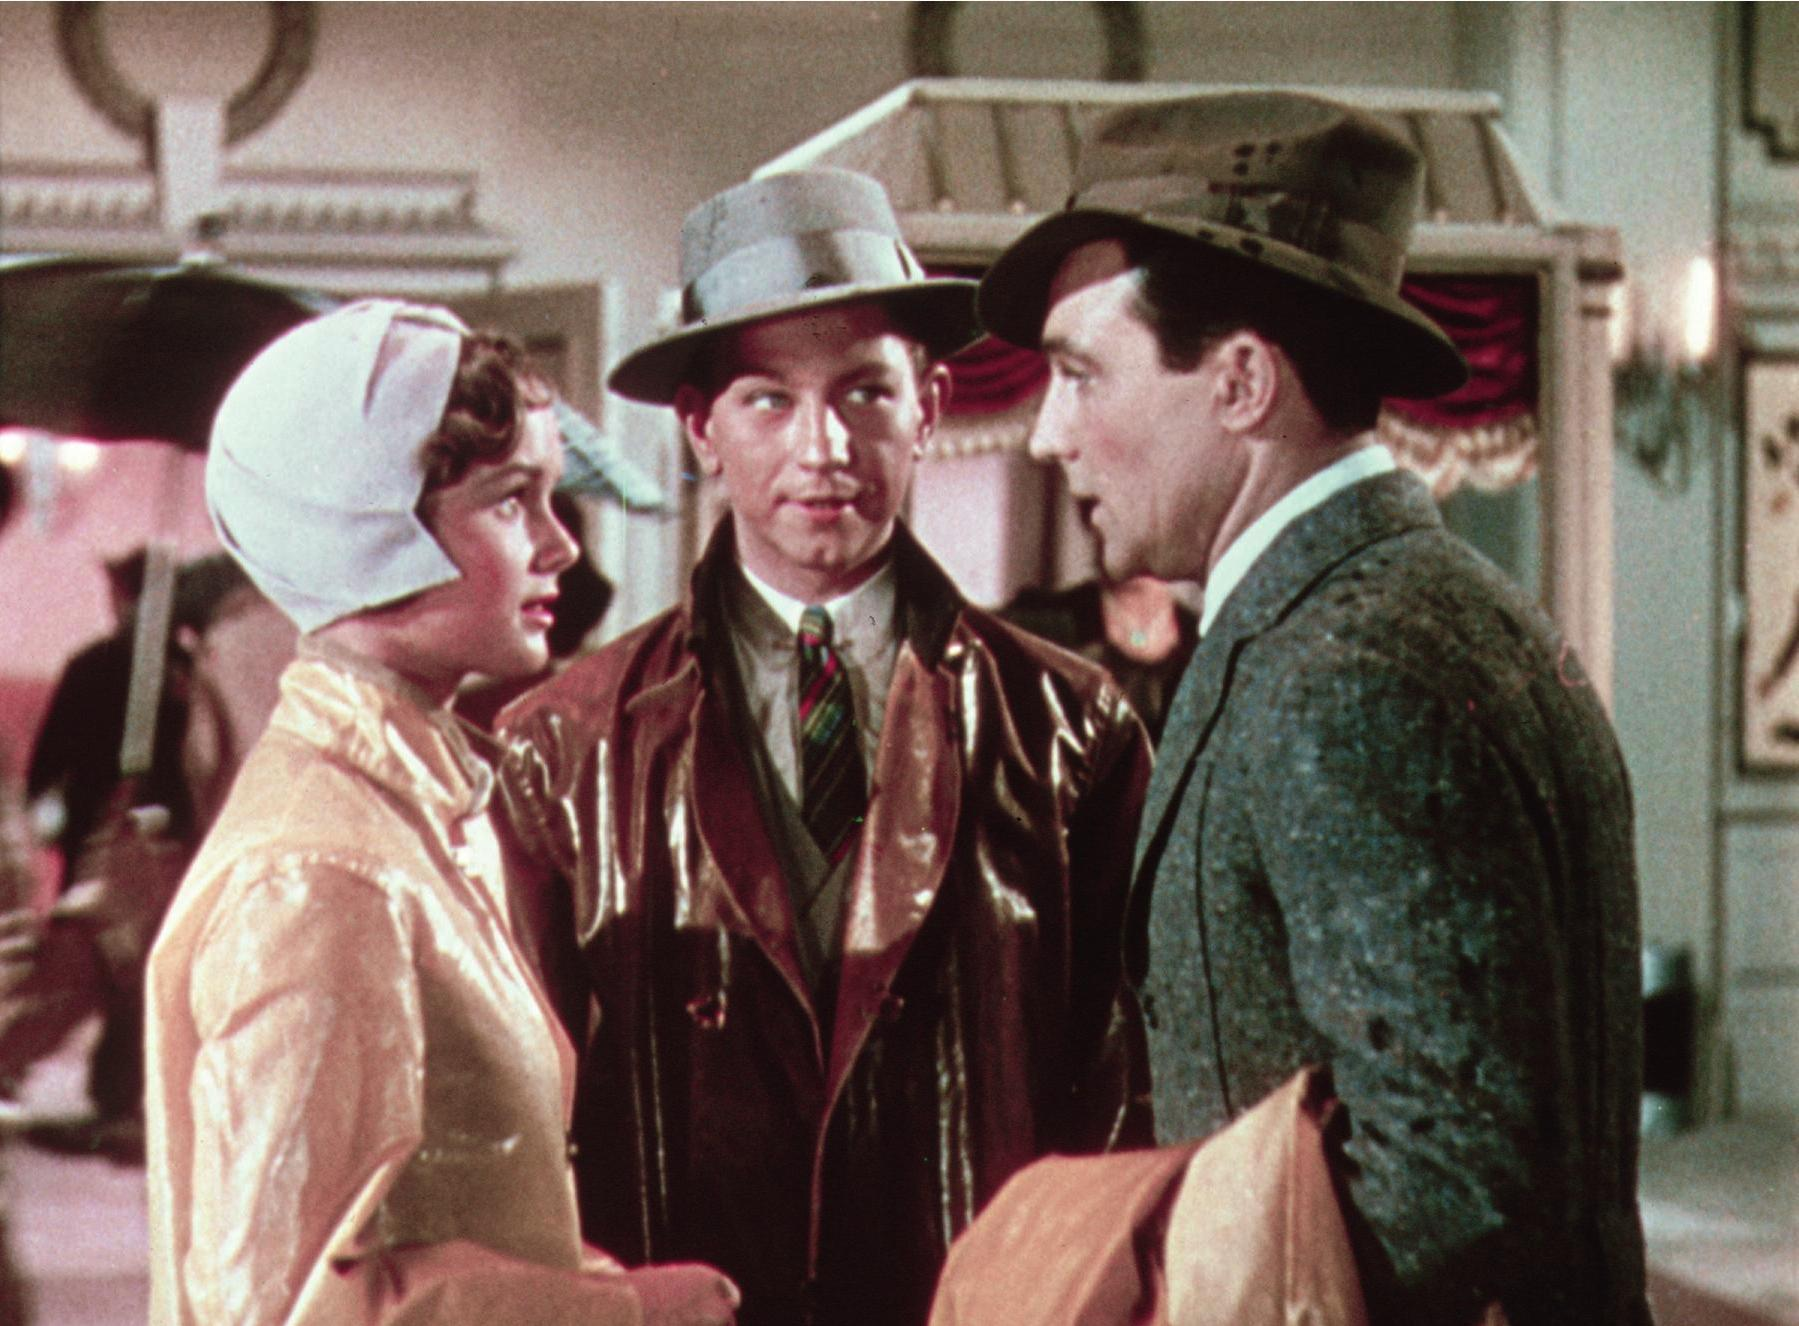 Debbie Reynolds, Donald O'Conner and Gene Kelly show us it's all about the hat